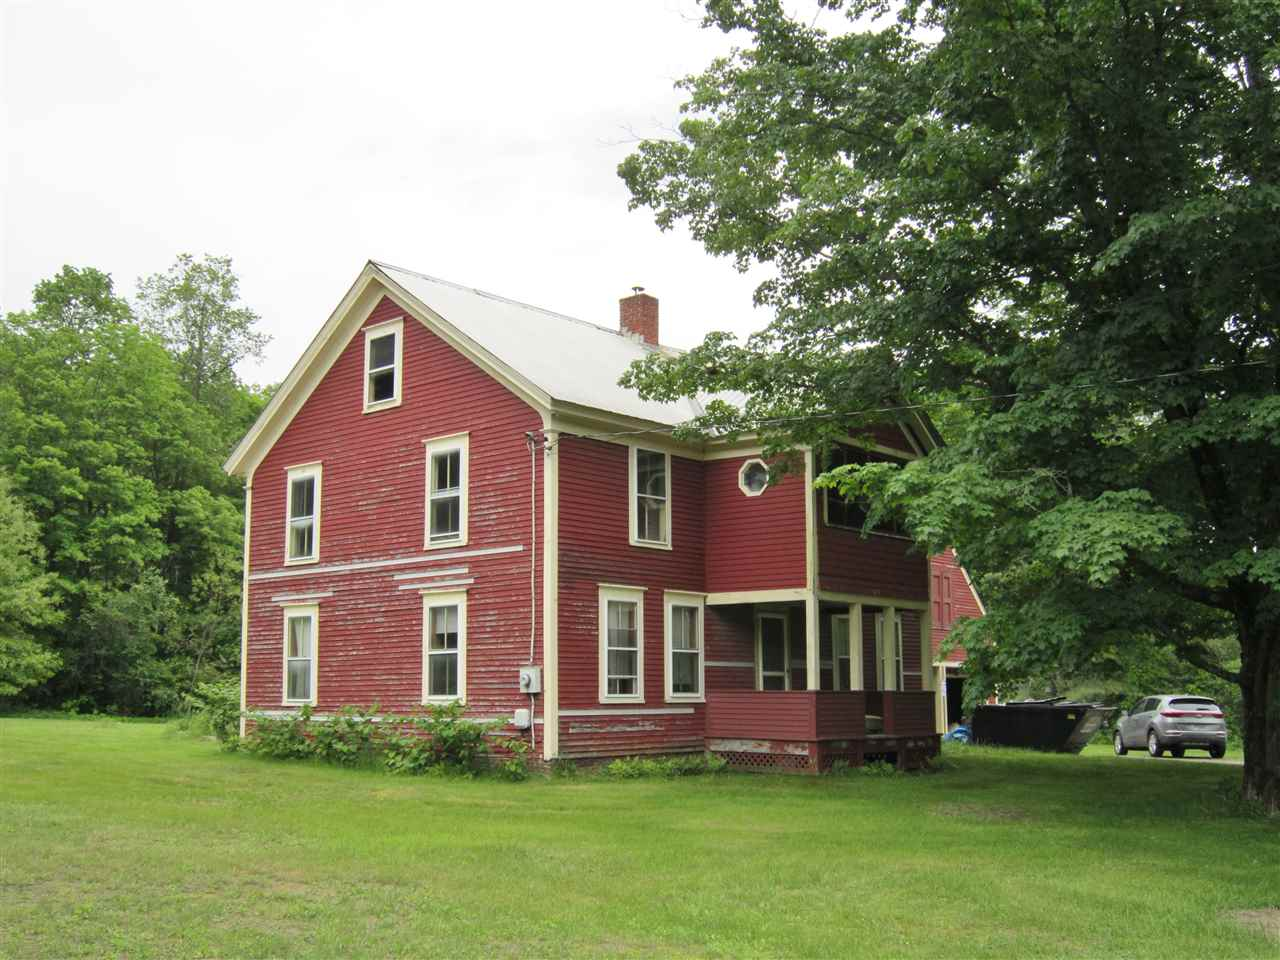 1880 Colonial located on beautiful 1.7 acre lot...